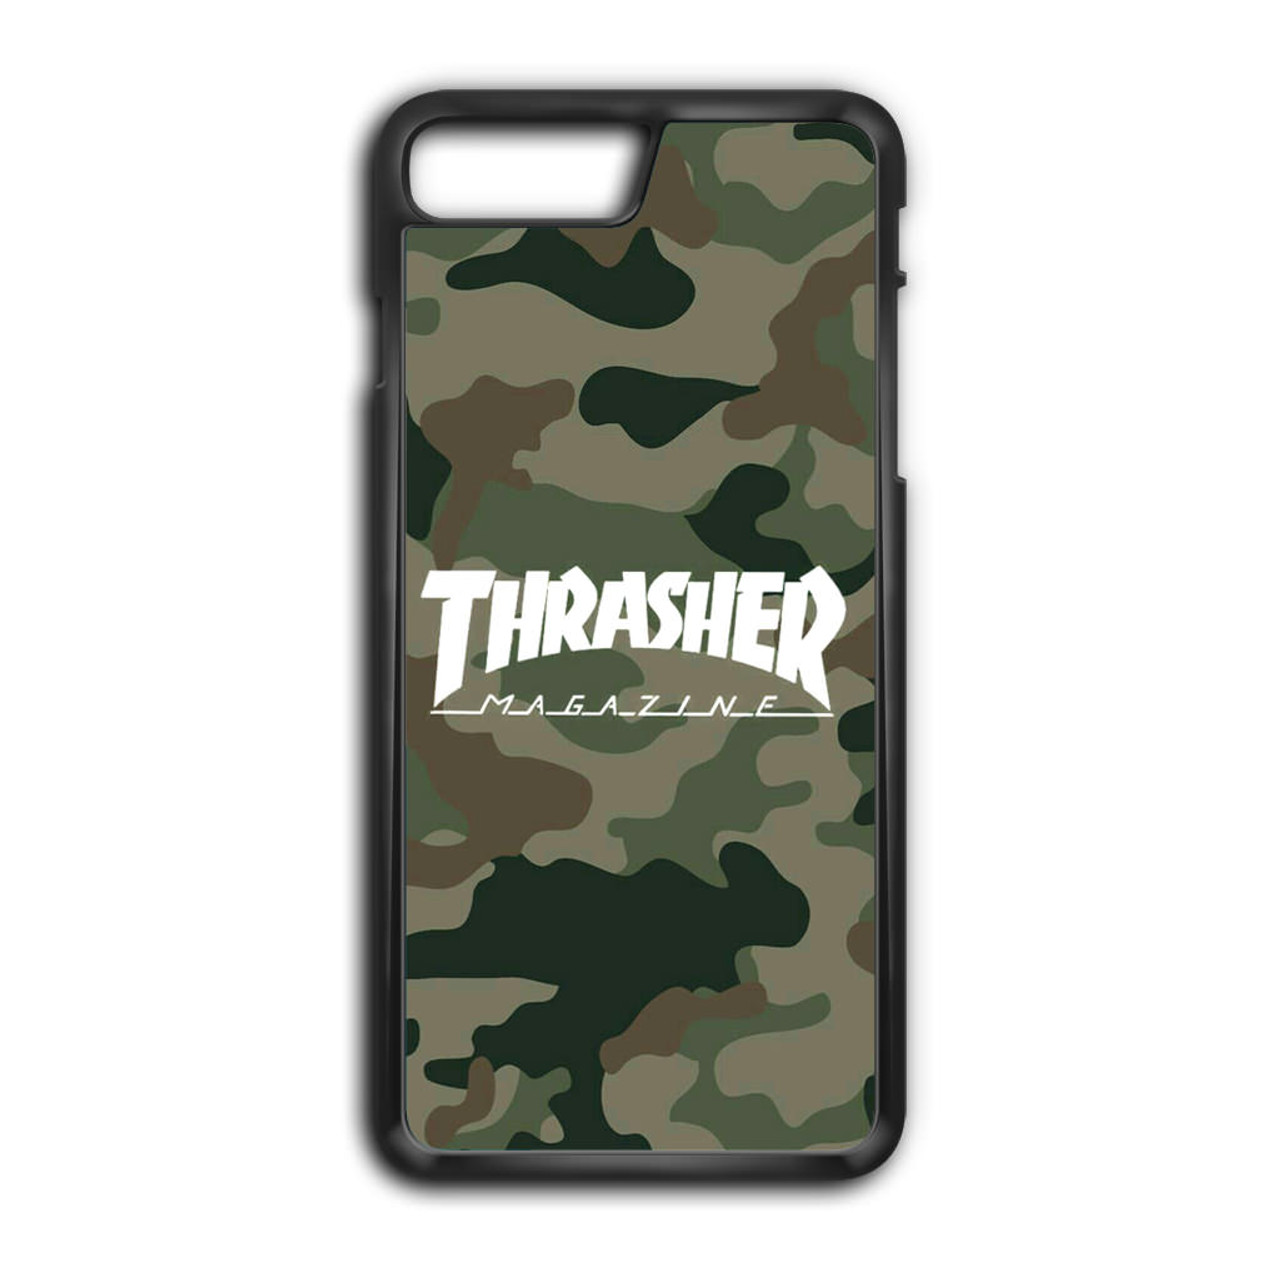 new york 716a4 87999 Thrasher Magazine Bape Camo iPhone 8 Plus Case